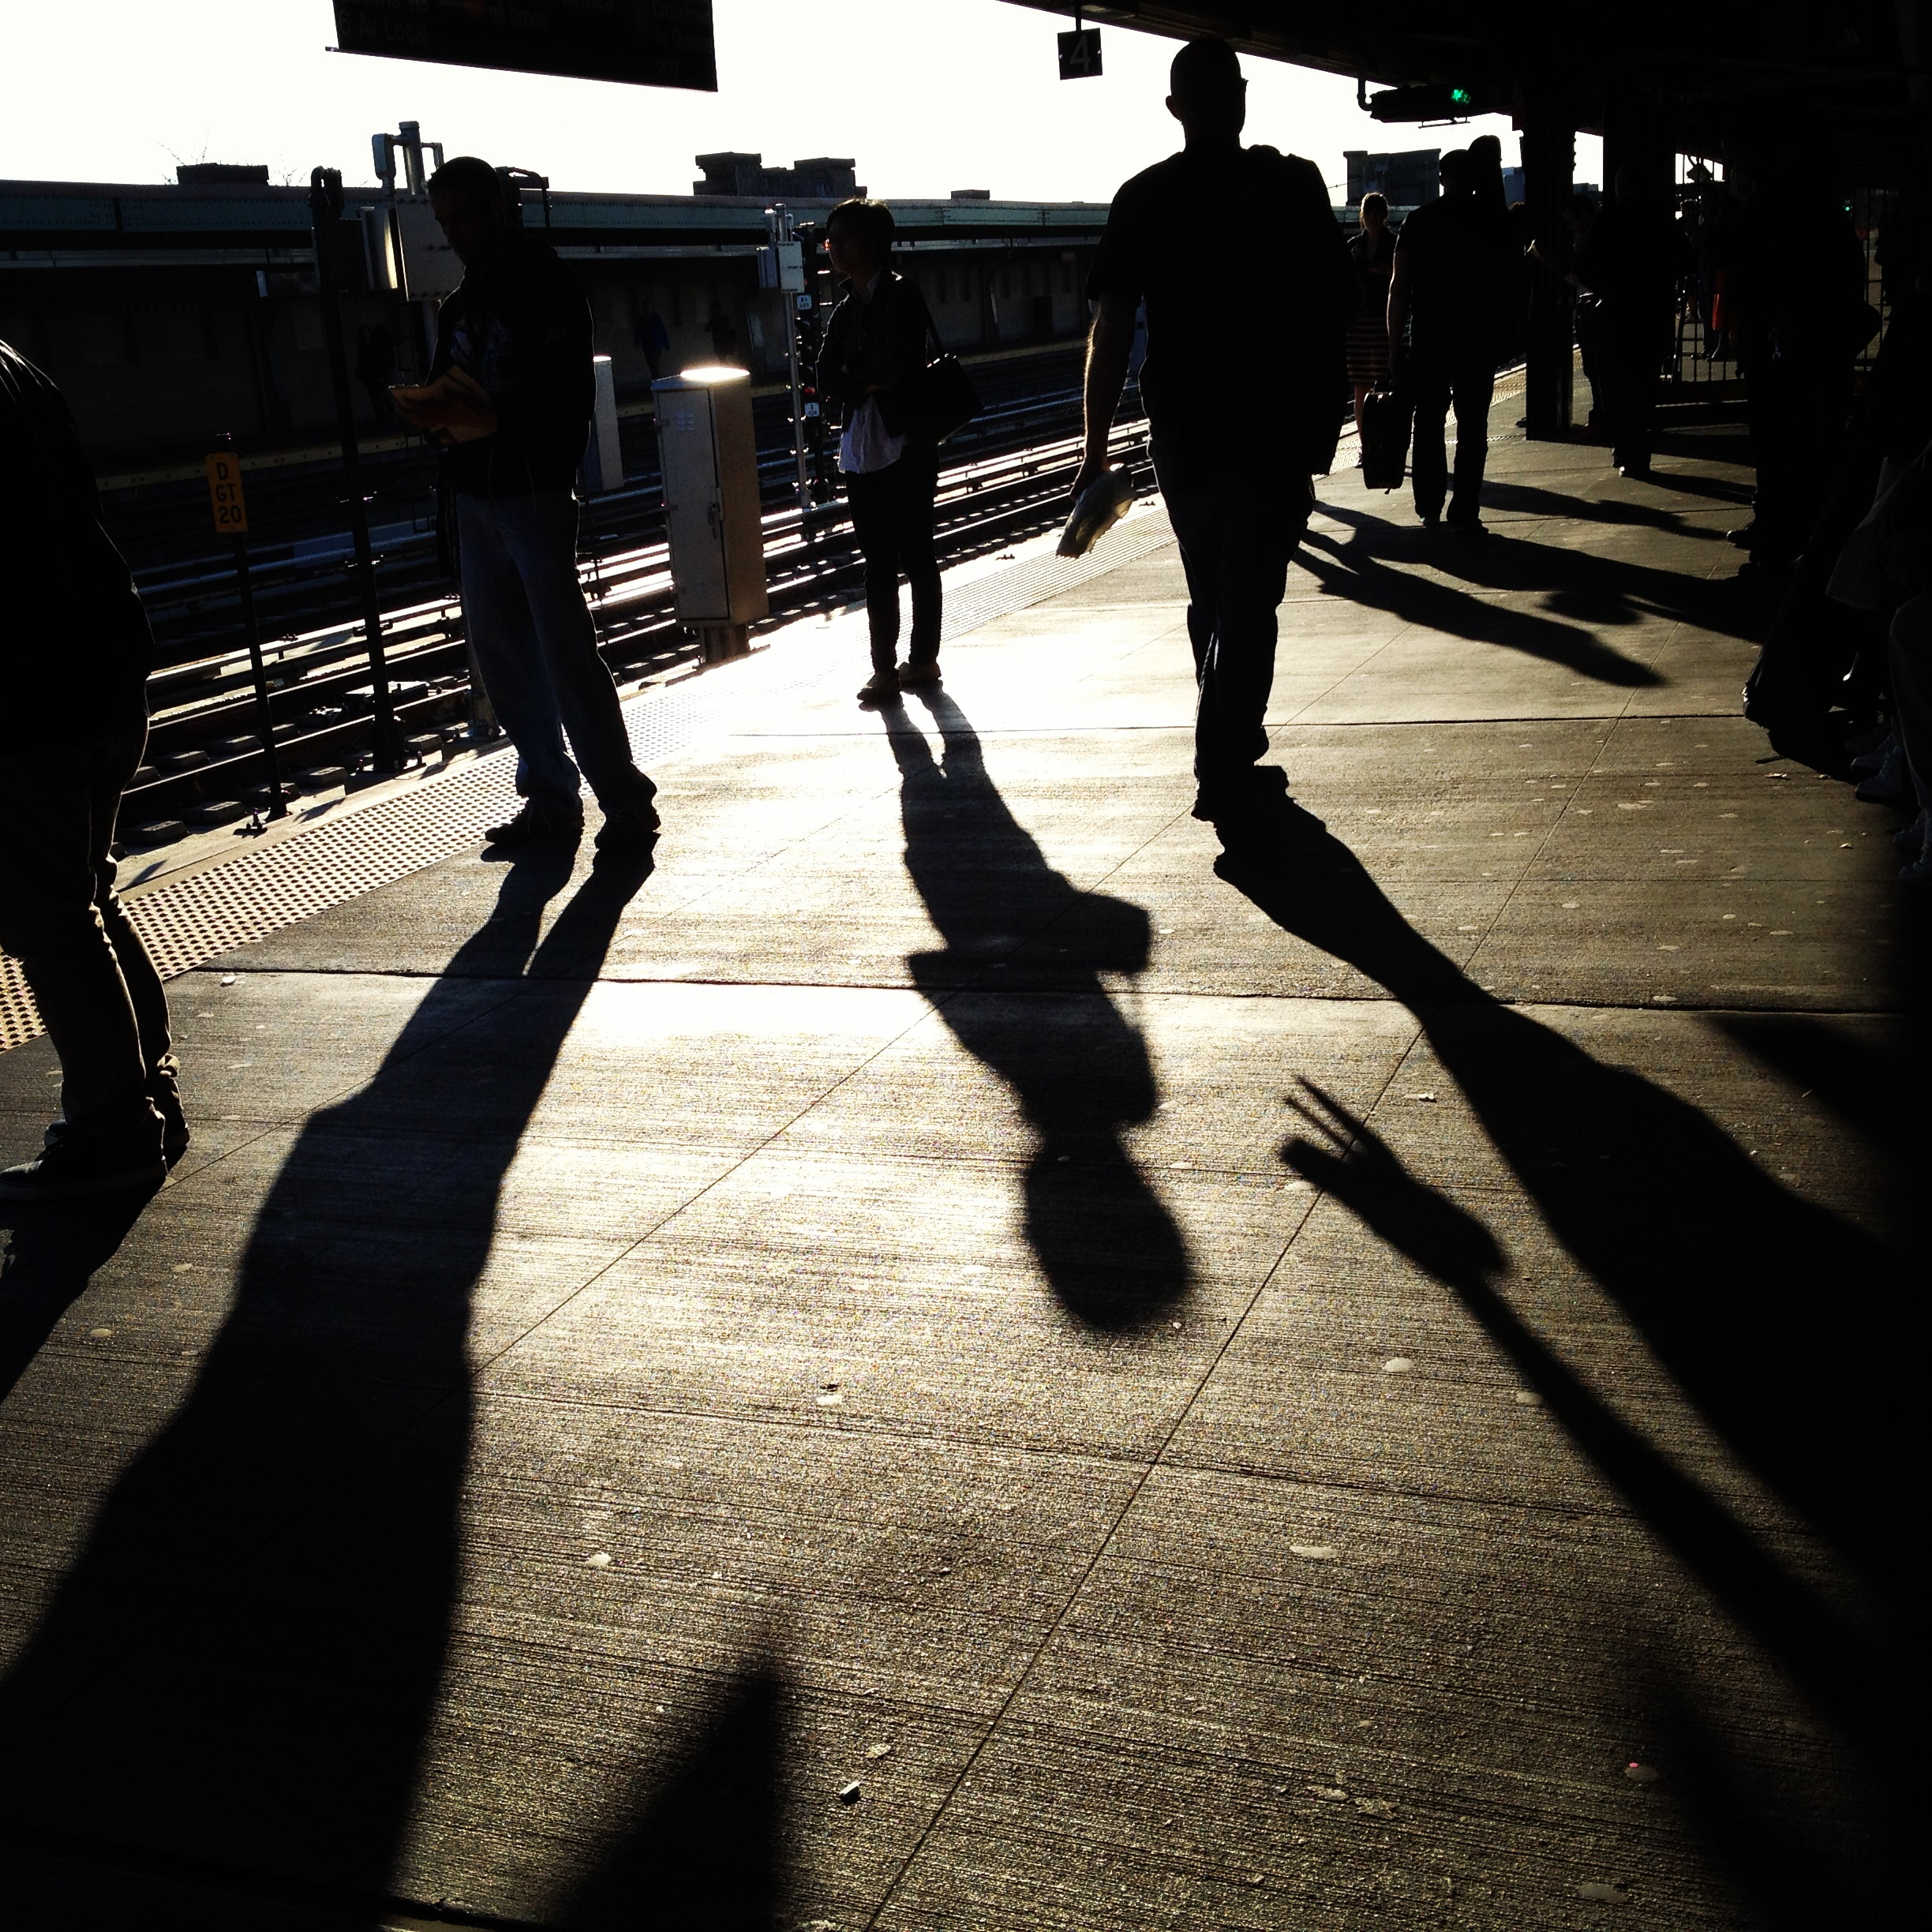 subway platform shadows